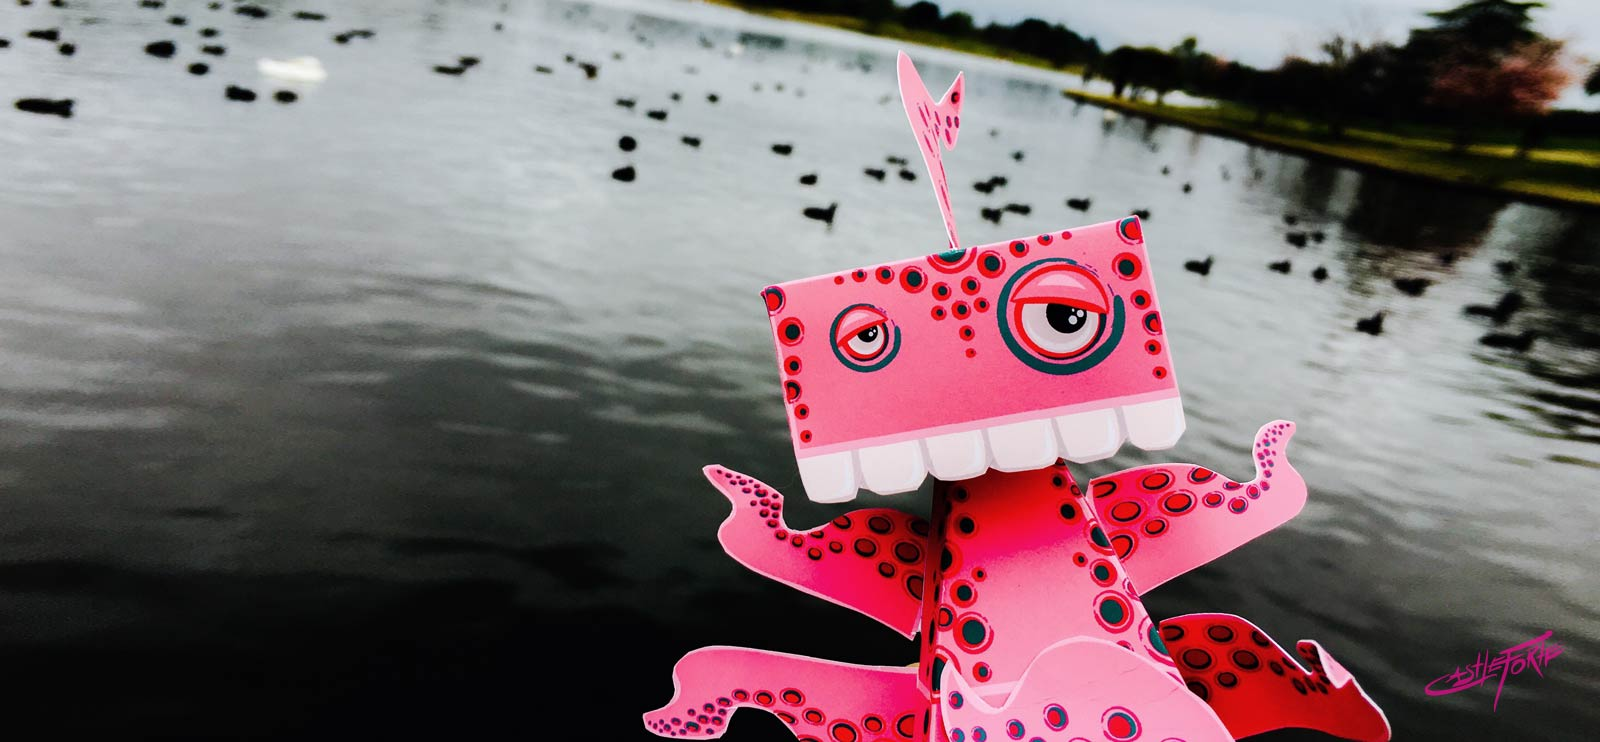 Clammy 2.0 HedKase Paper Toy